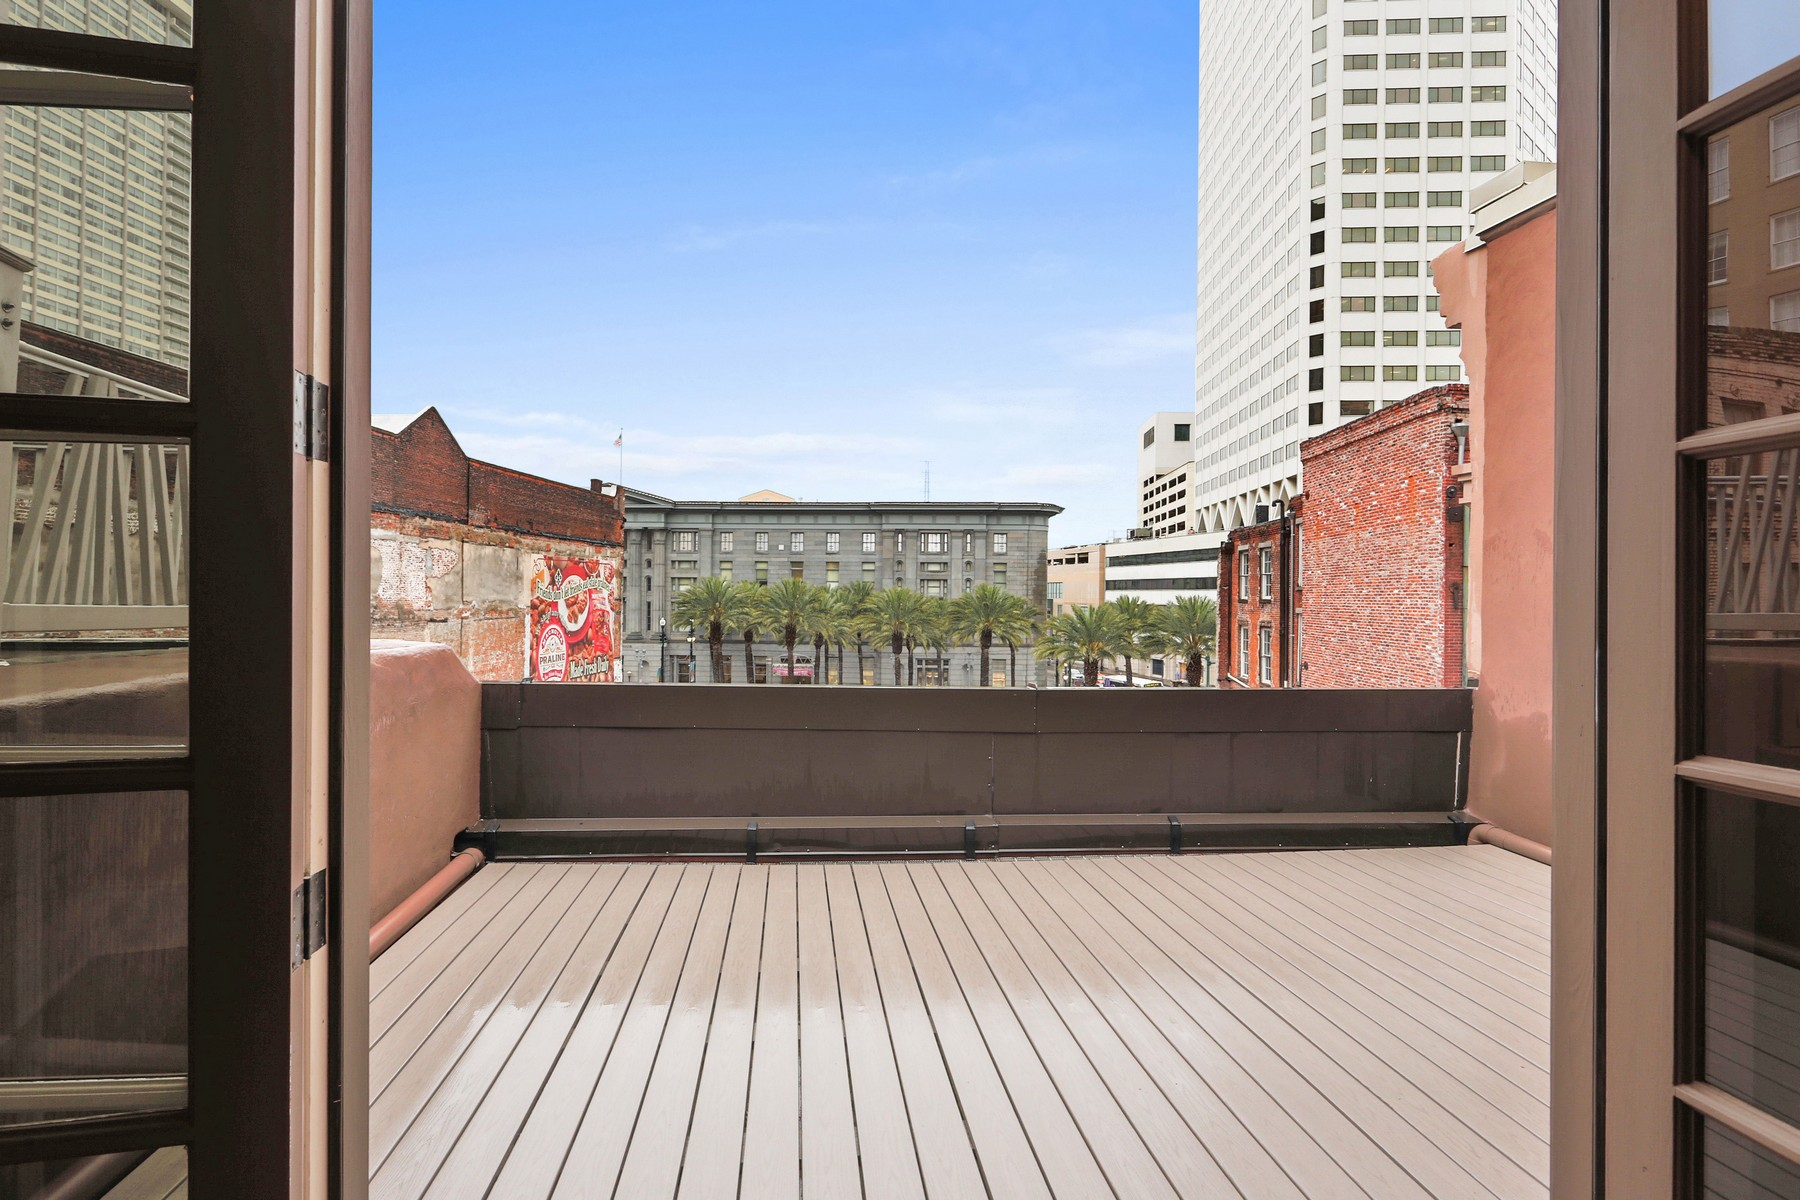 Additional photo for property listing at 418 Common St  New Orleans, Louisiana 70130 United States